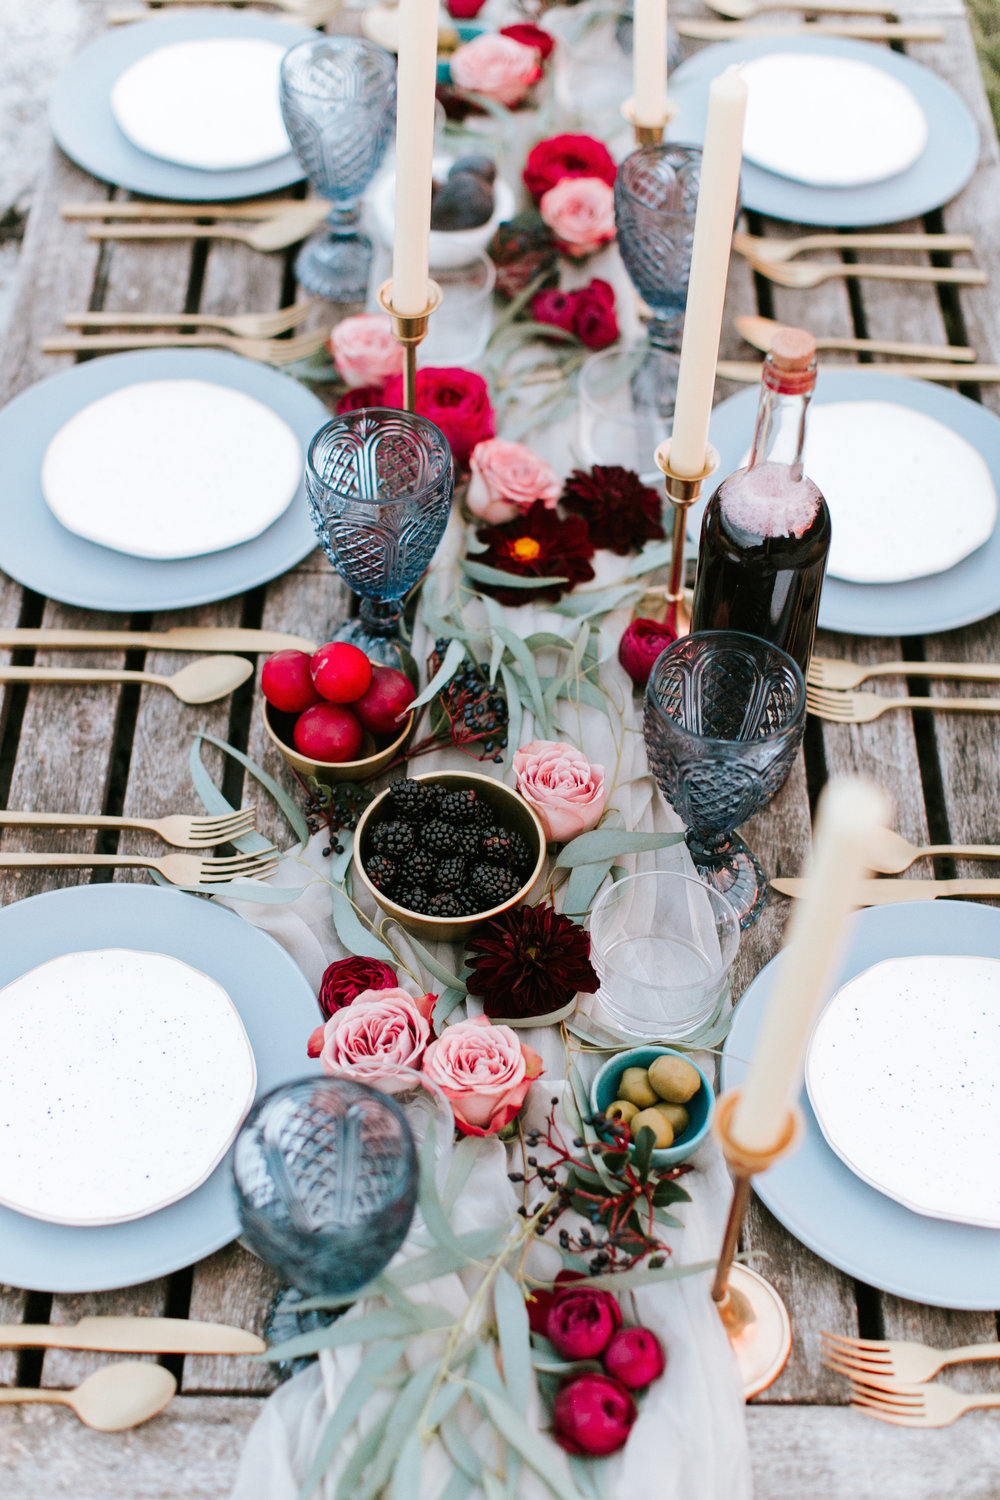 Get the look: Gold candleholder, matte gold cutlery, sapphire goblets